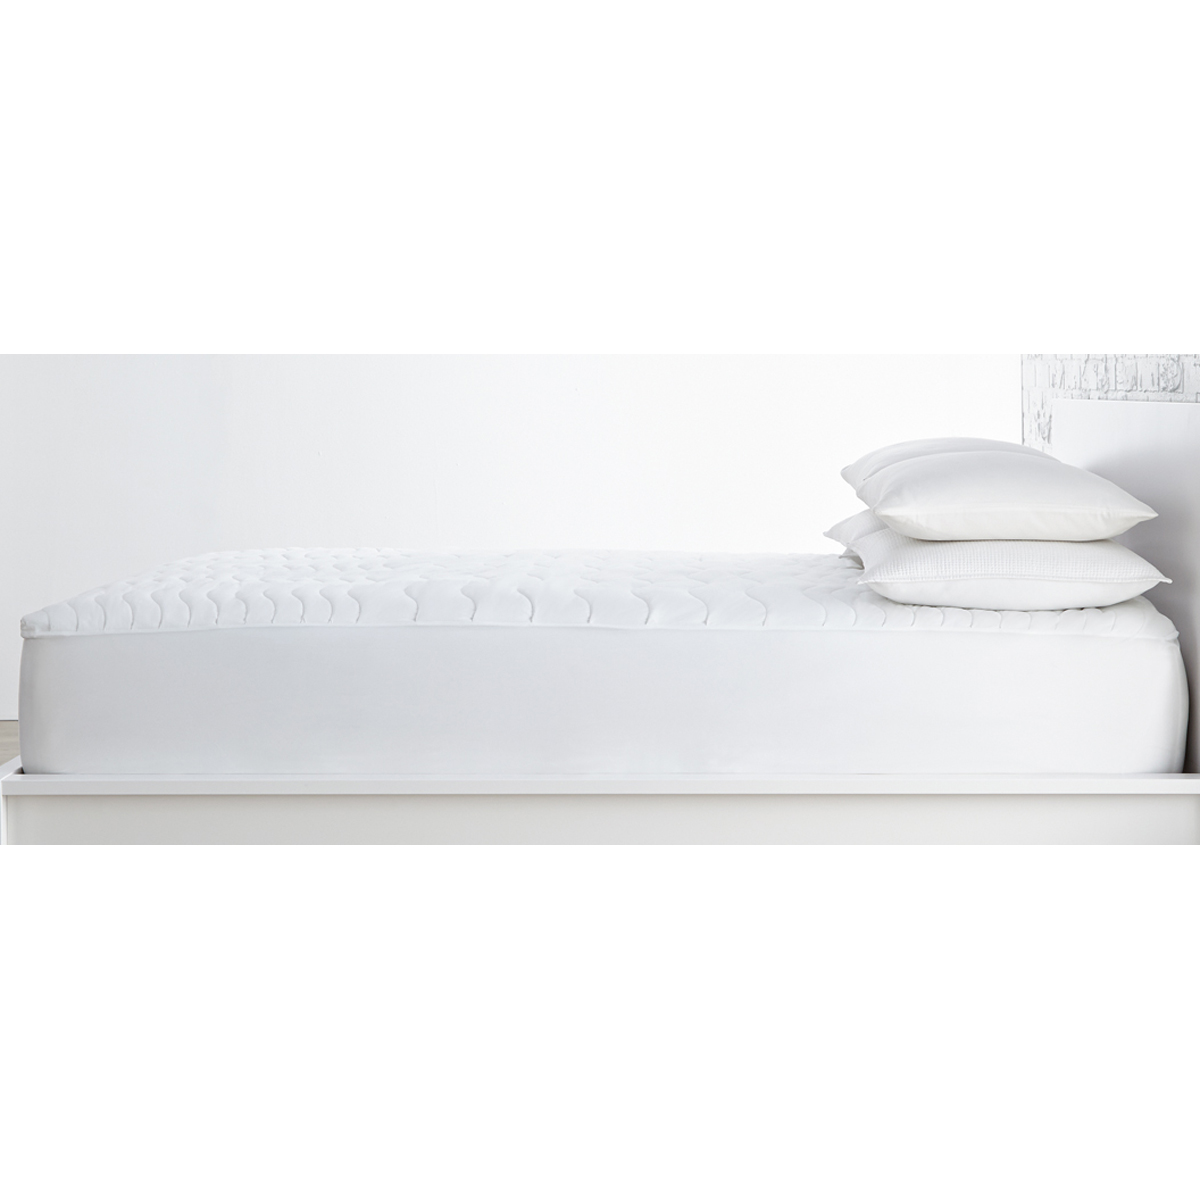 Sunbeam health™ RESTORE™ Heated Mattress Pad Full Size